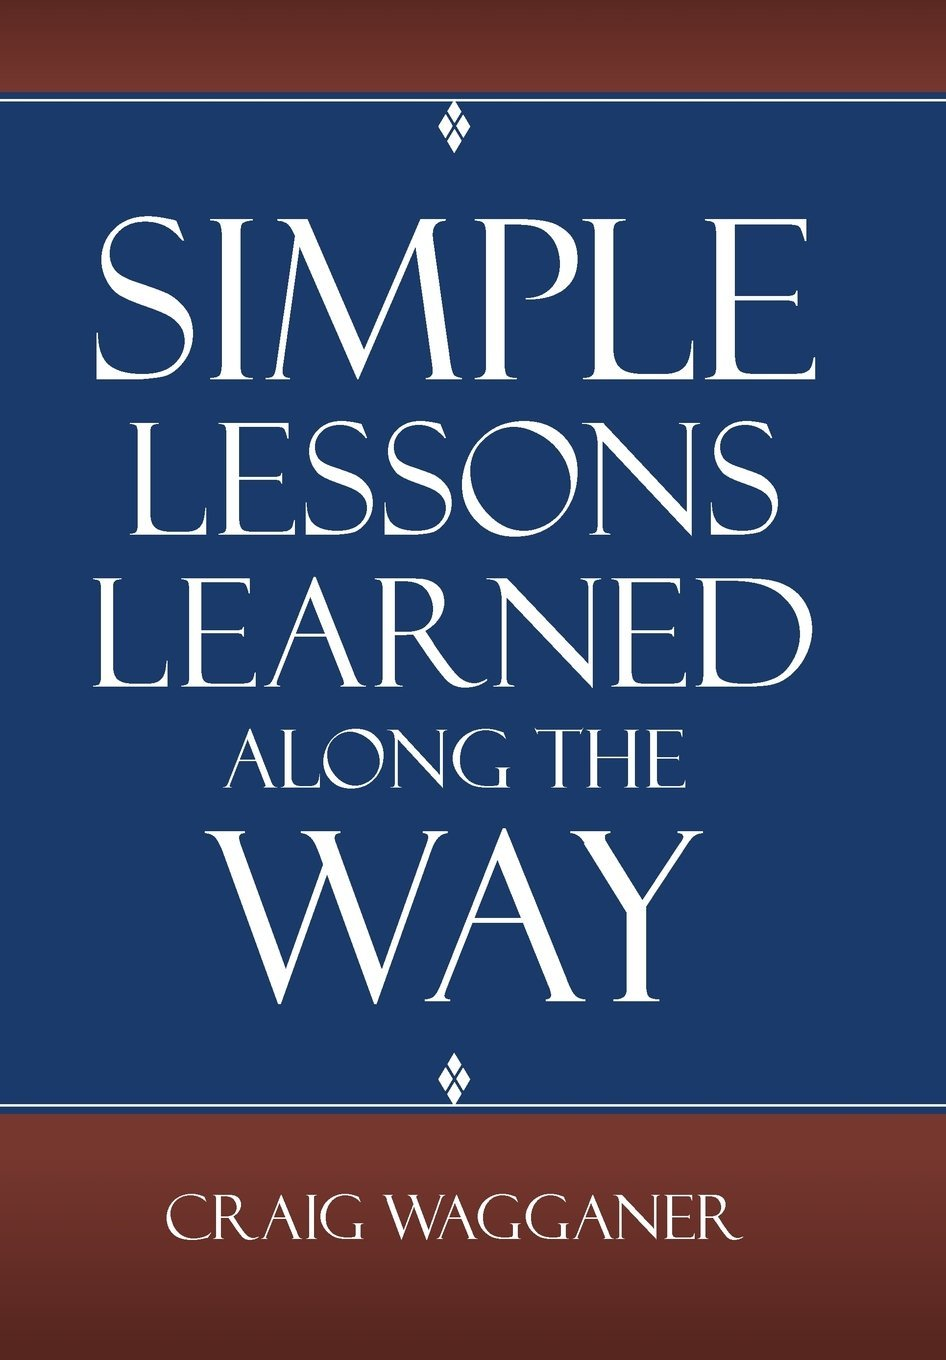 Simple Lessons Learned Along the Way  by  Craig Wagganer